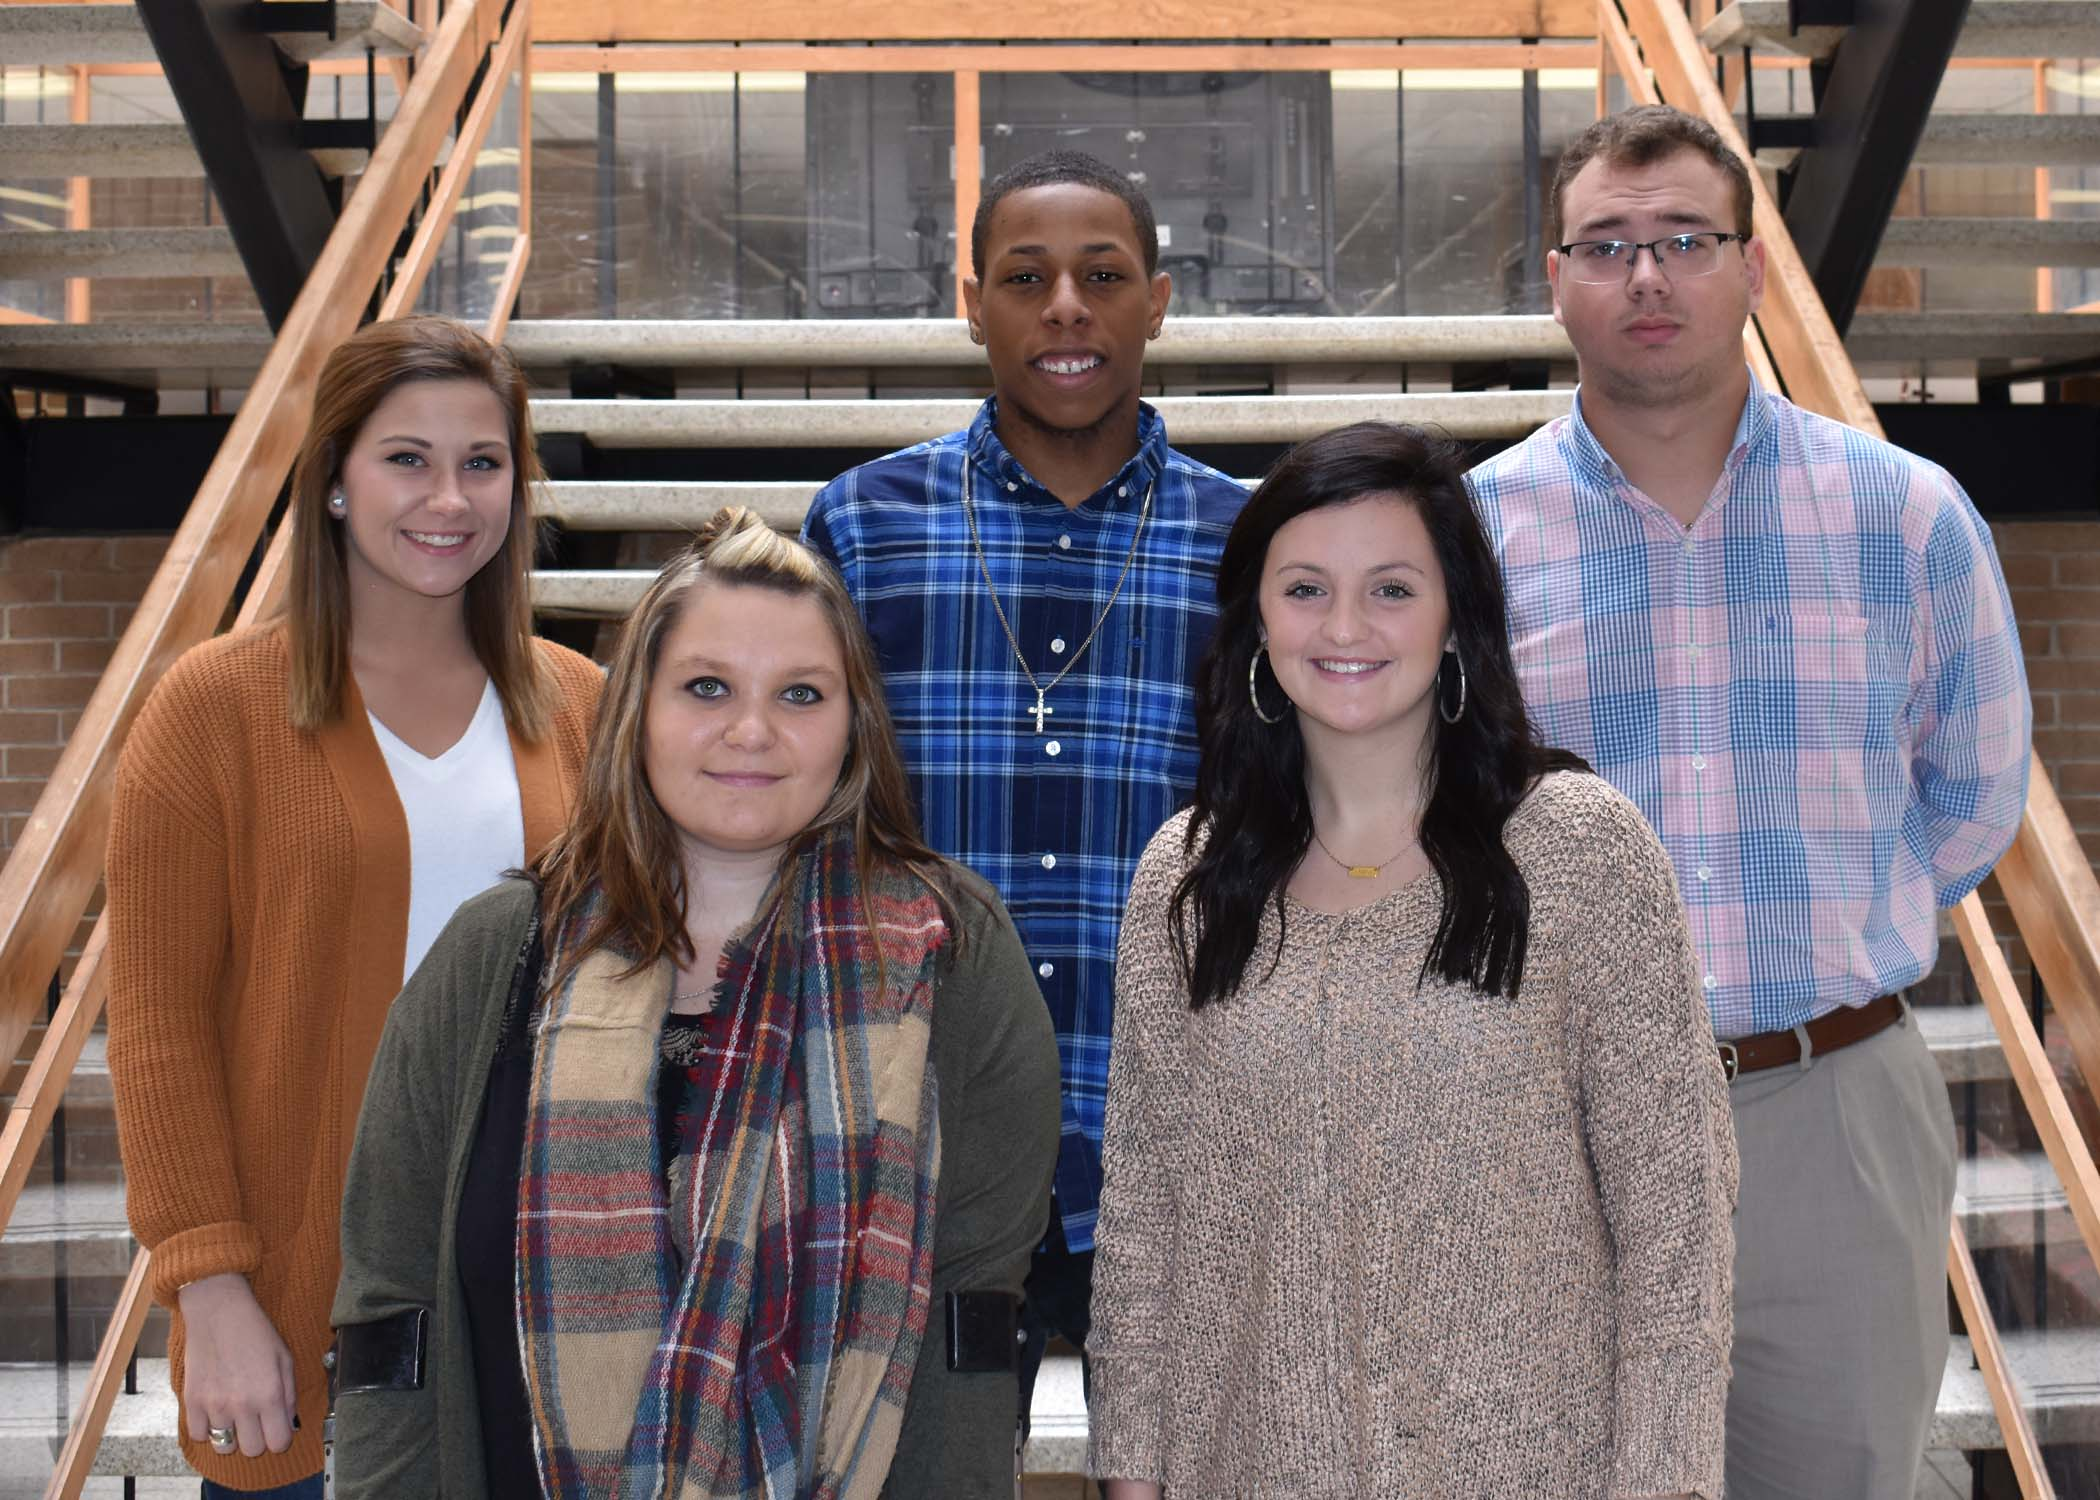 Pictured left to right are Alena Carter of Snow Hill, Russell Curtis Hill Memorial; Allison Hill of Mount Olive, W. Robert and Suzanne S. Bizzell Health Sciences Scholarship; Back Row, Logan Dawson of Kinston, Stephanie M. Jones Memorial; Tylik Hicks of Kinston, Lynwood C. and Grace J. Turner Memorial; Jeremy Rouse of Snow Hill, Hodges Family Scholarship.